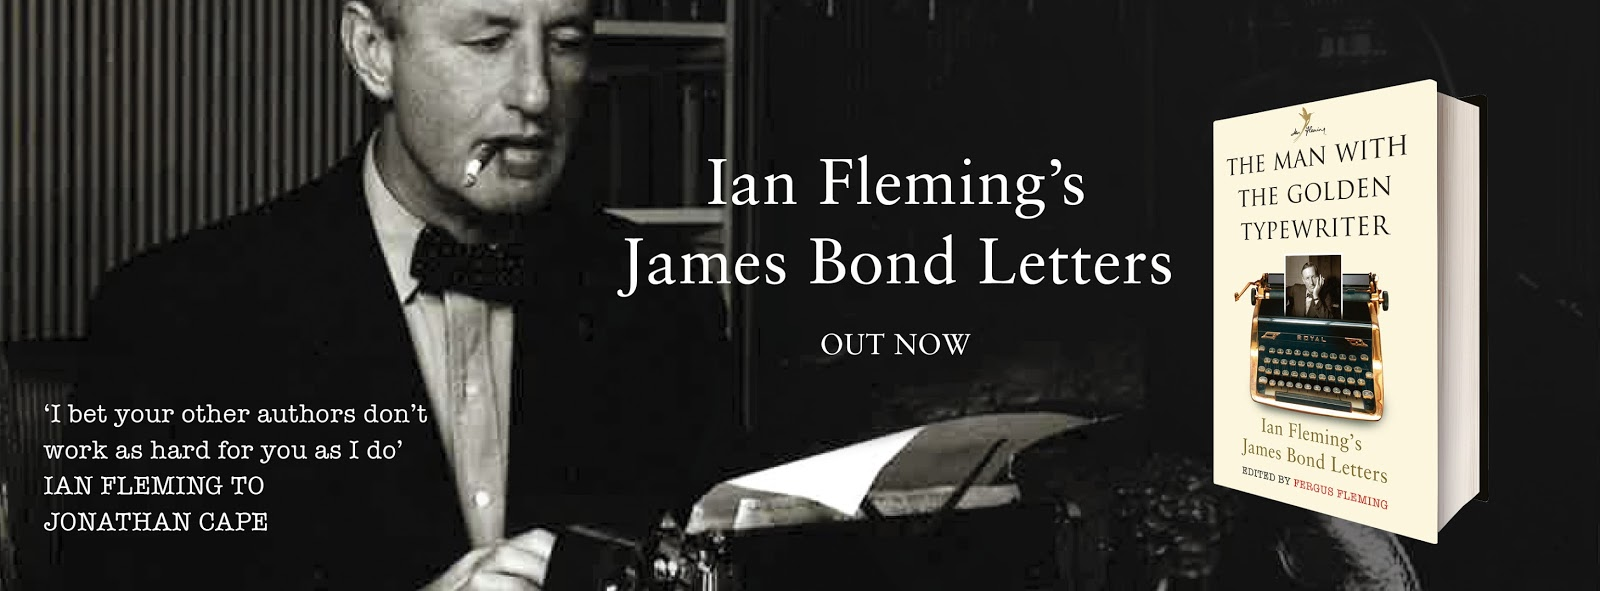 ian fleming tv series